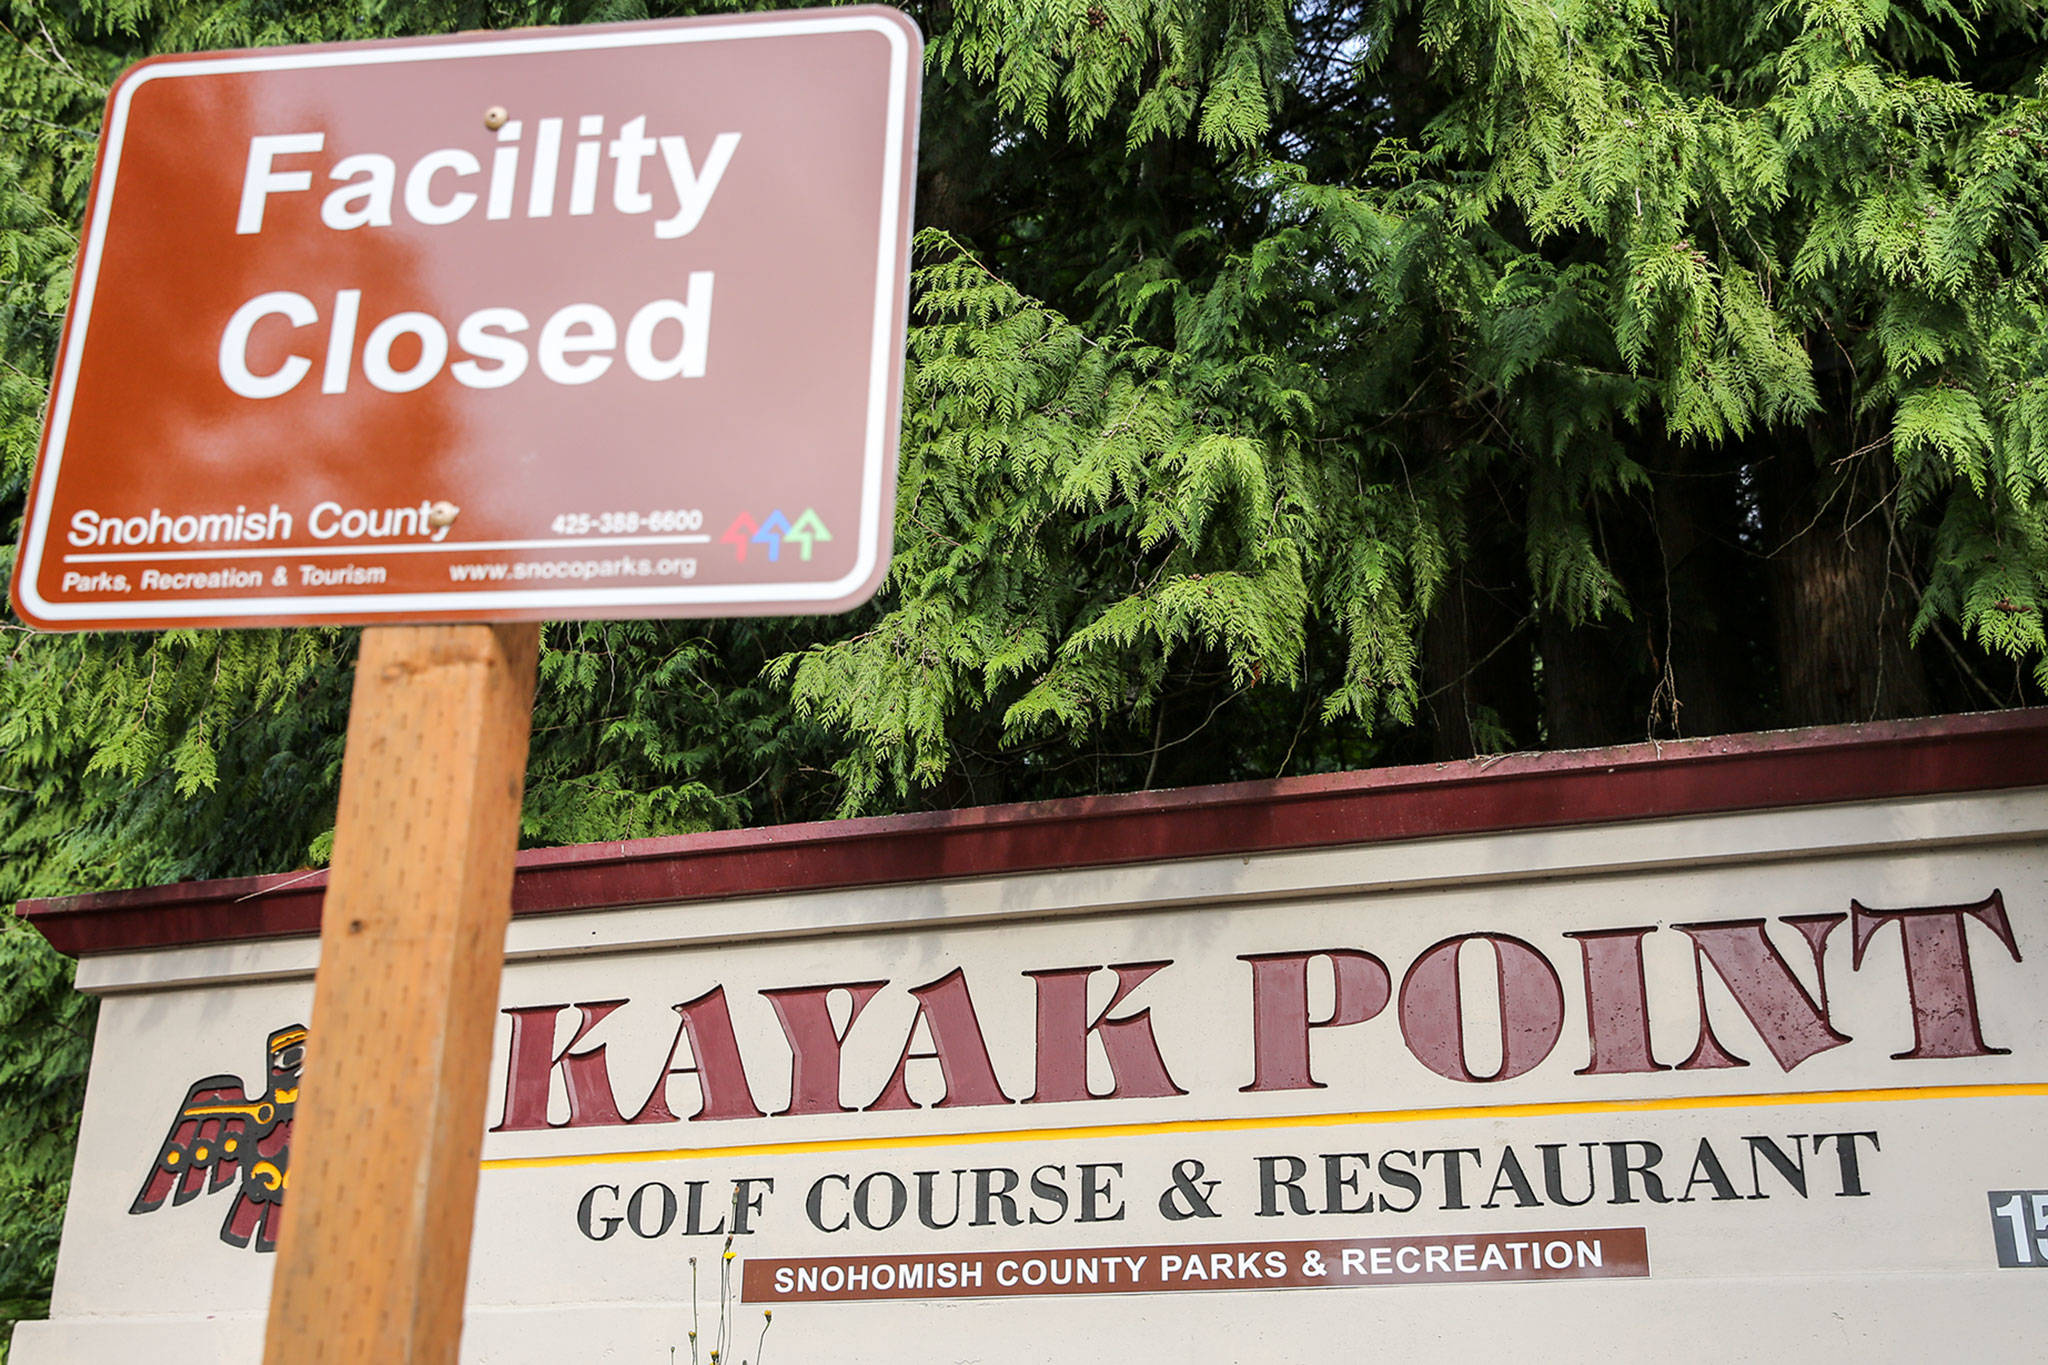 Kayak Point Golf Course in Stanwood remains closed. Snohomish County is taking proposals about other possible uses for the property. (Kevin Clark / The Herald)